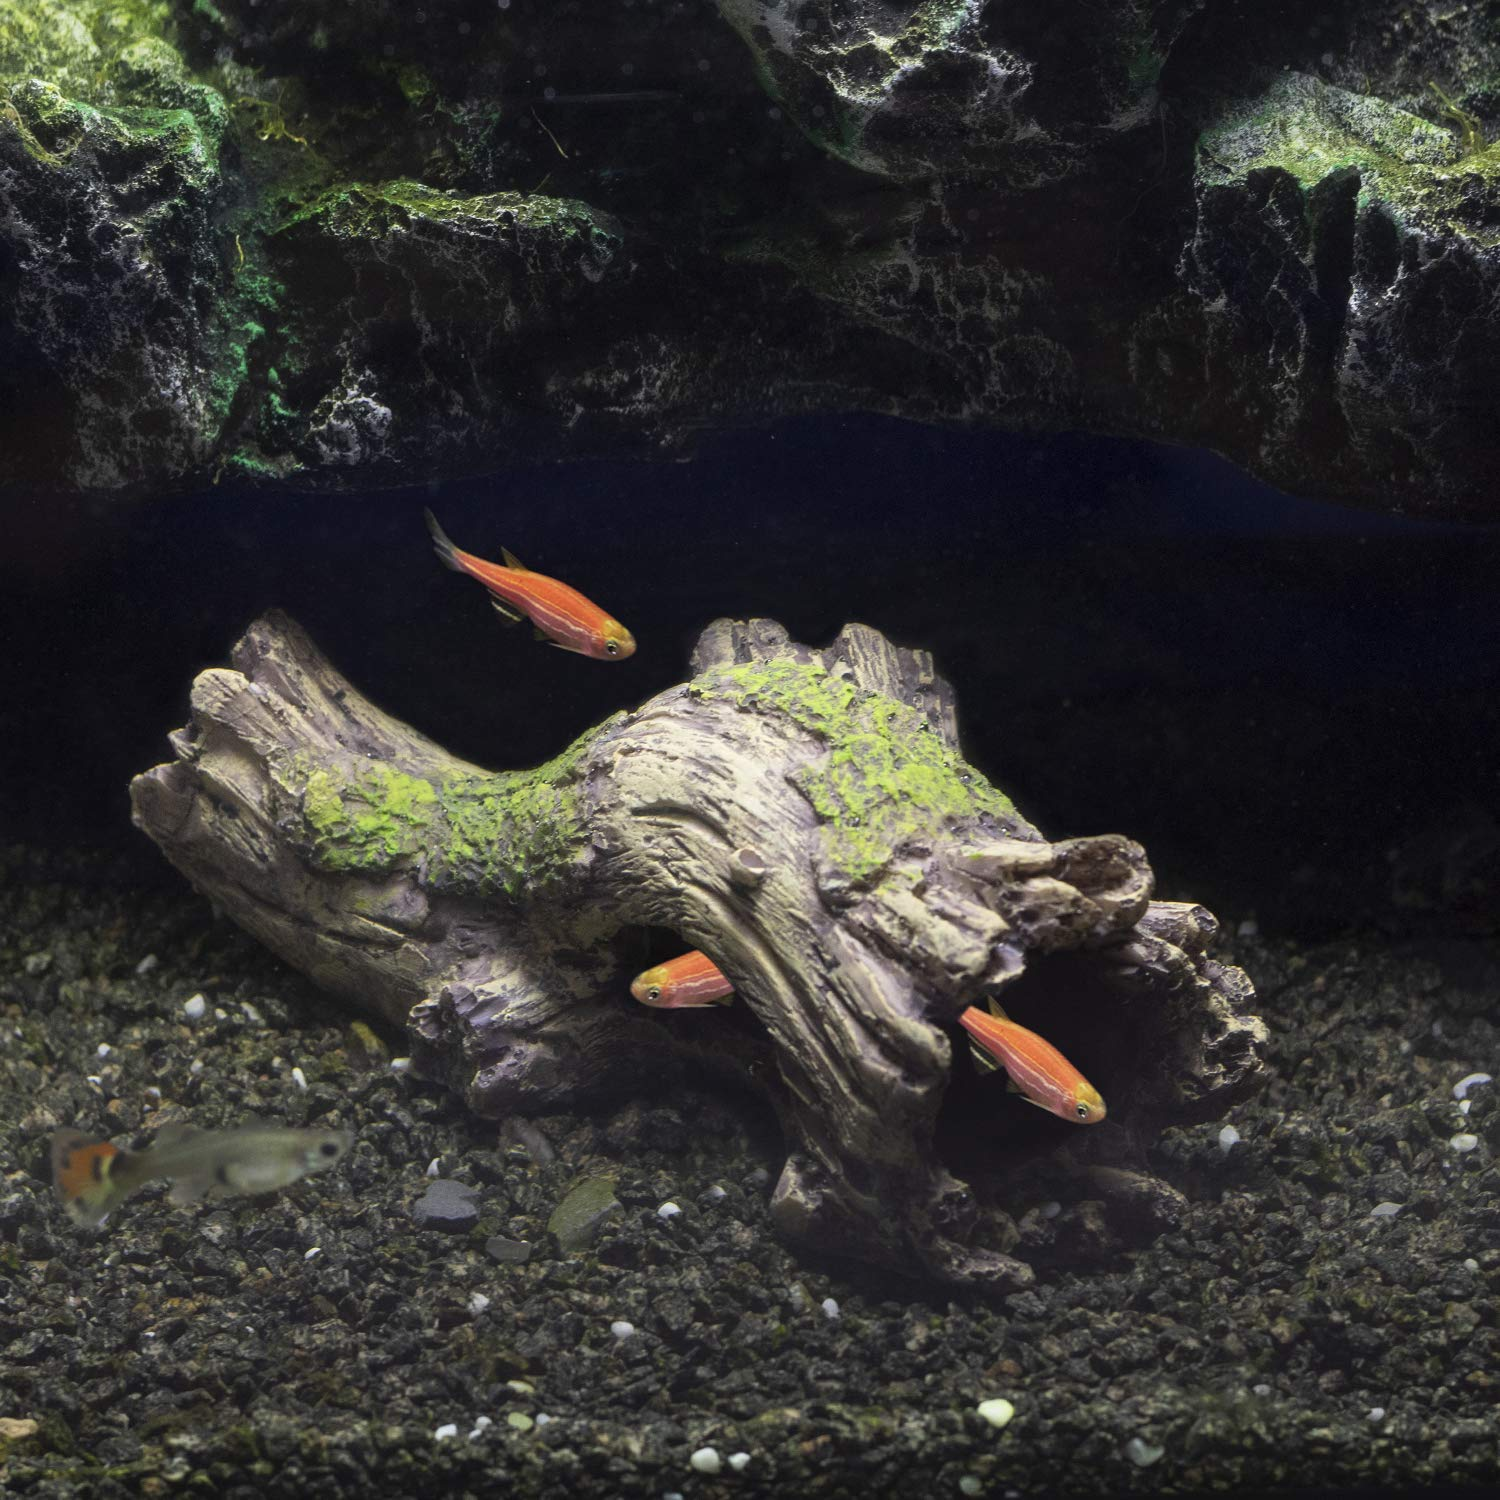 Fish hiding in a shelter